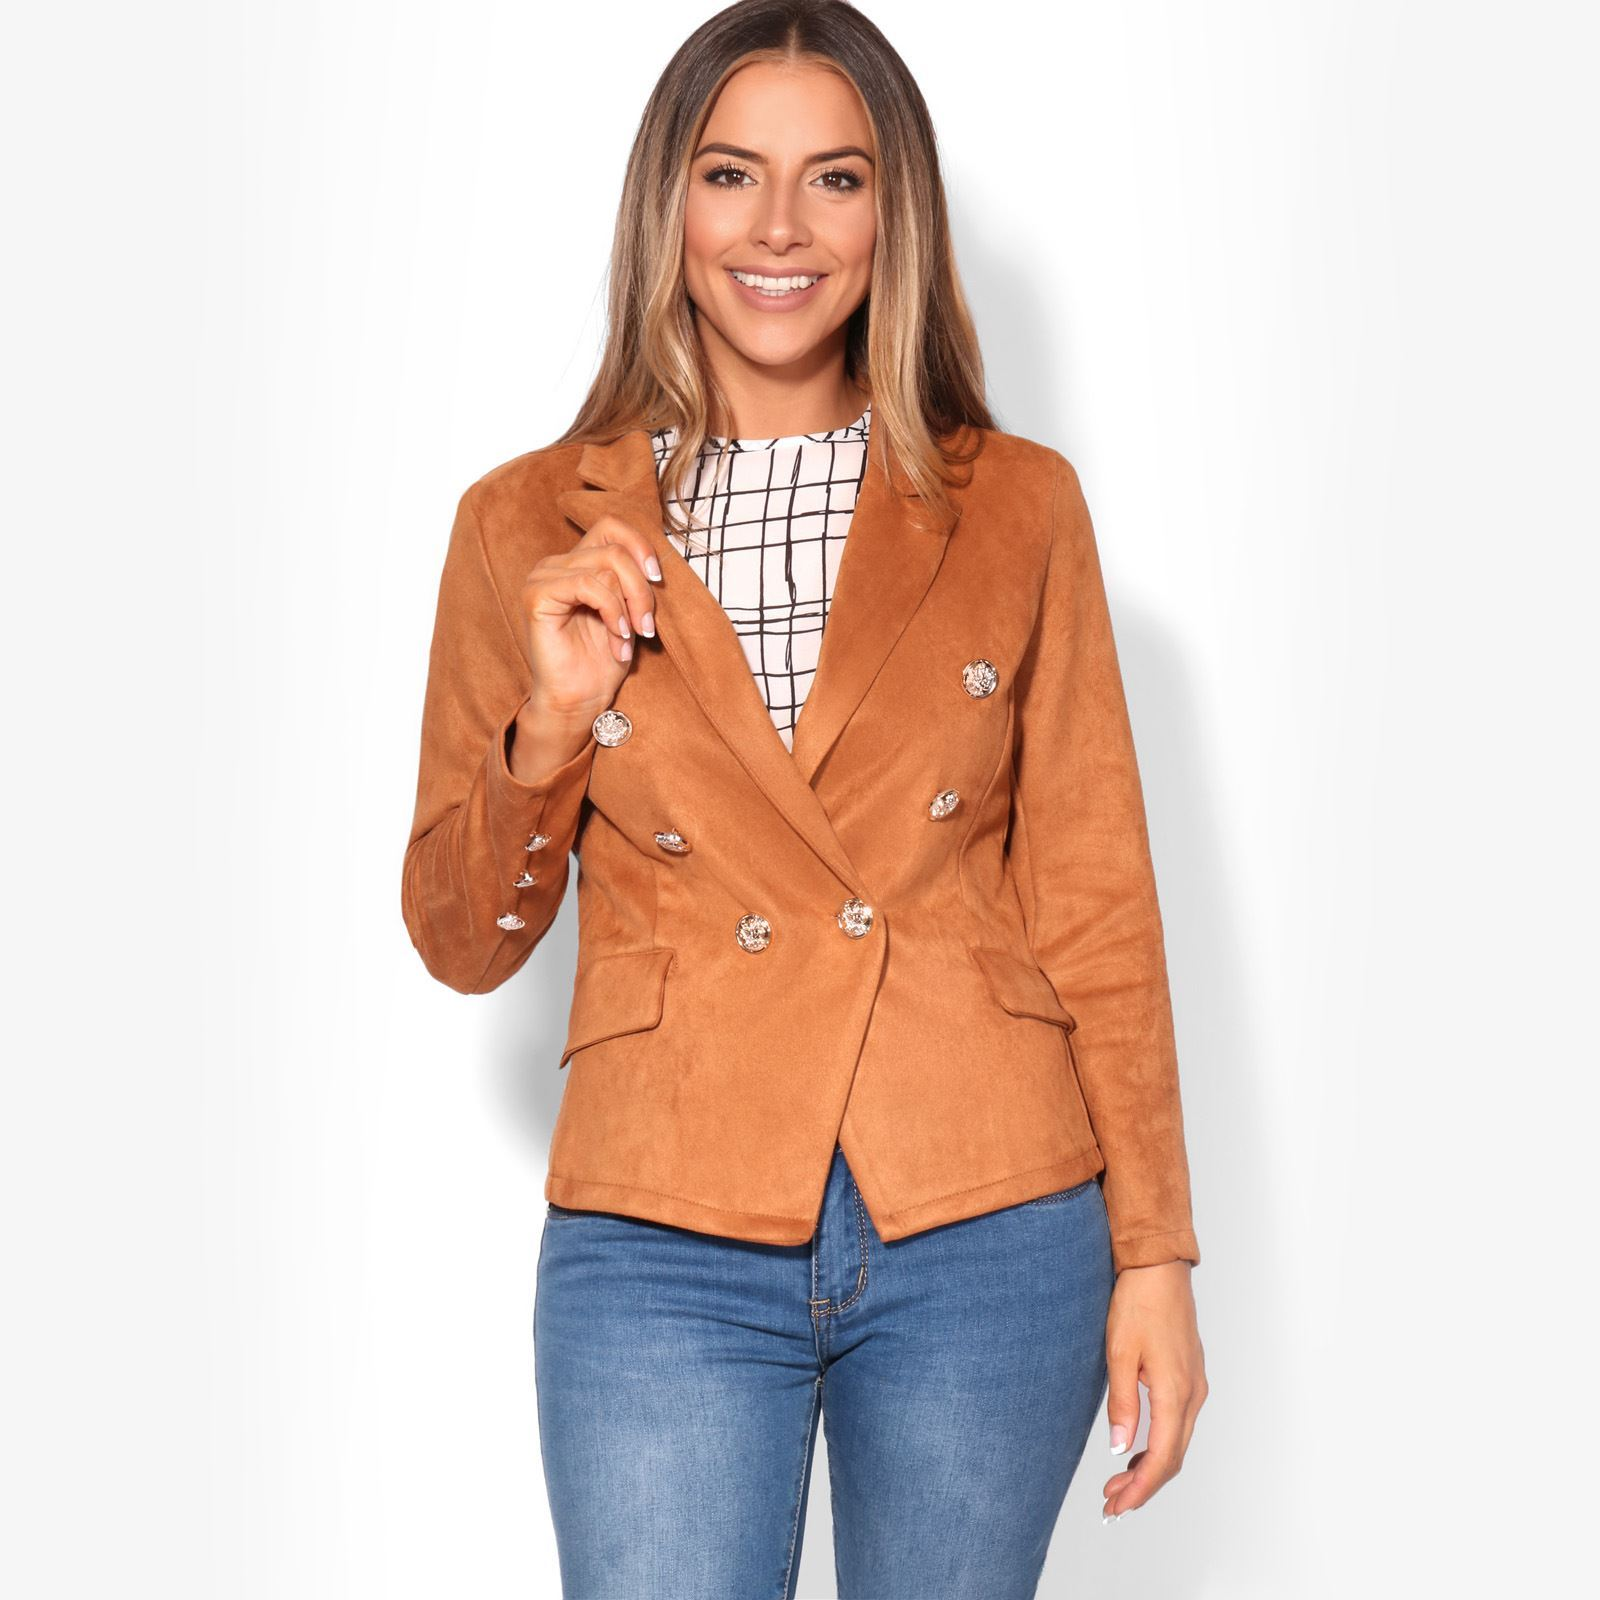 a1cd1b8bf5f17 Details about Women Faux Suede Jacket Blazer Ladies Fitted Buttoned  Military Lapel Coat